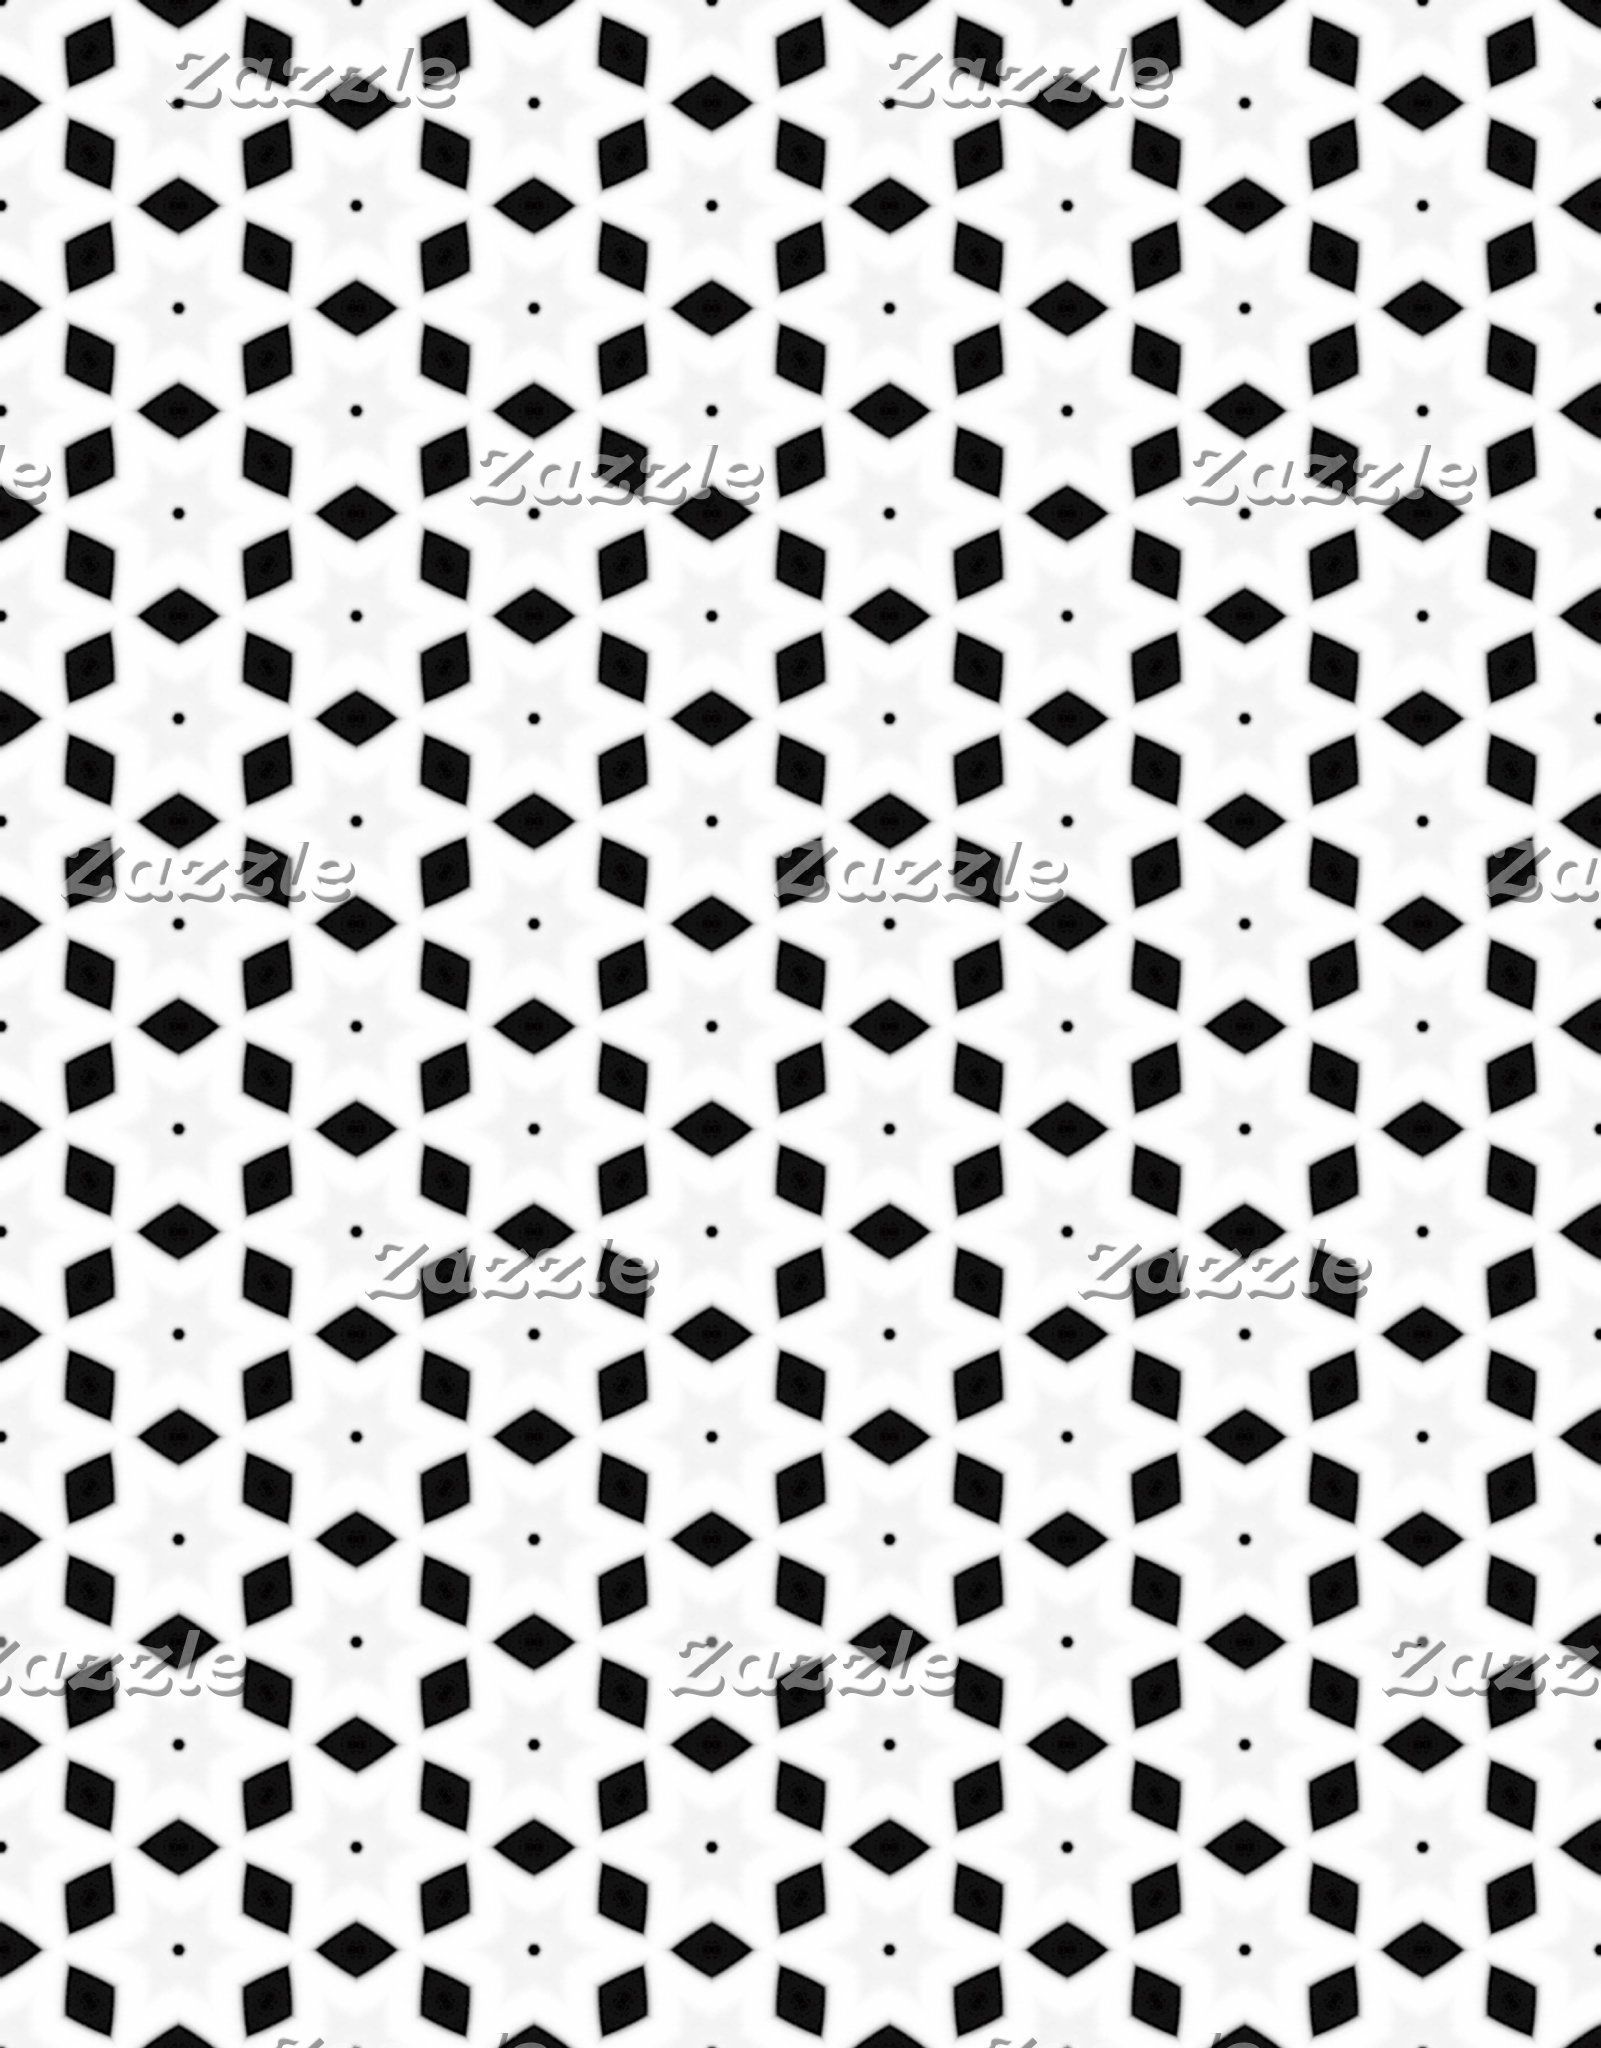 Black and White Patterns | Diamonds and Stars II